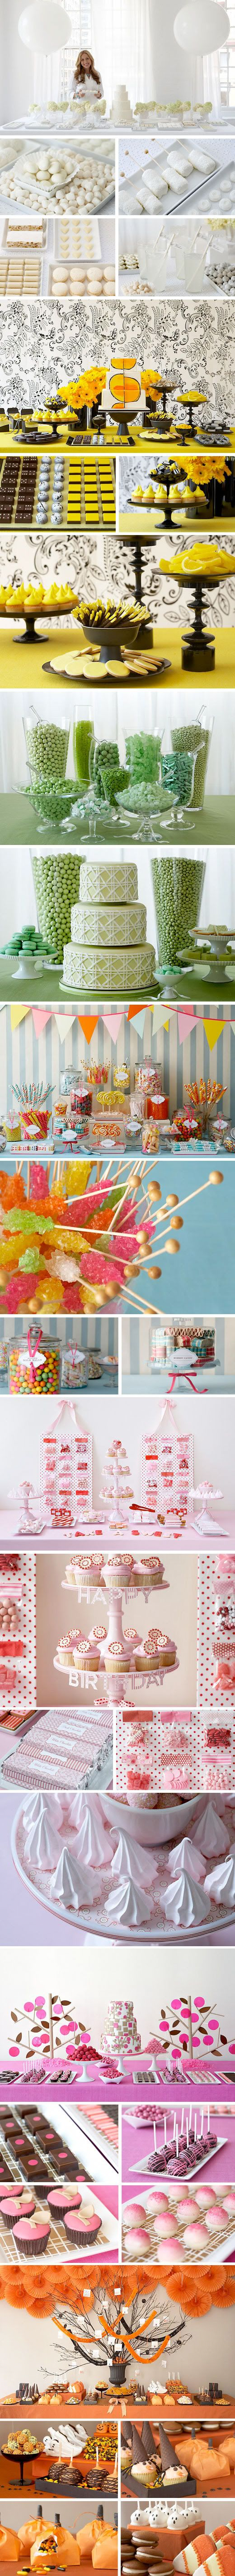 Party Themes - So many fun ideas and color combos!